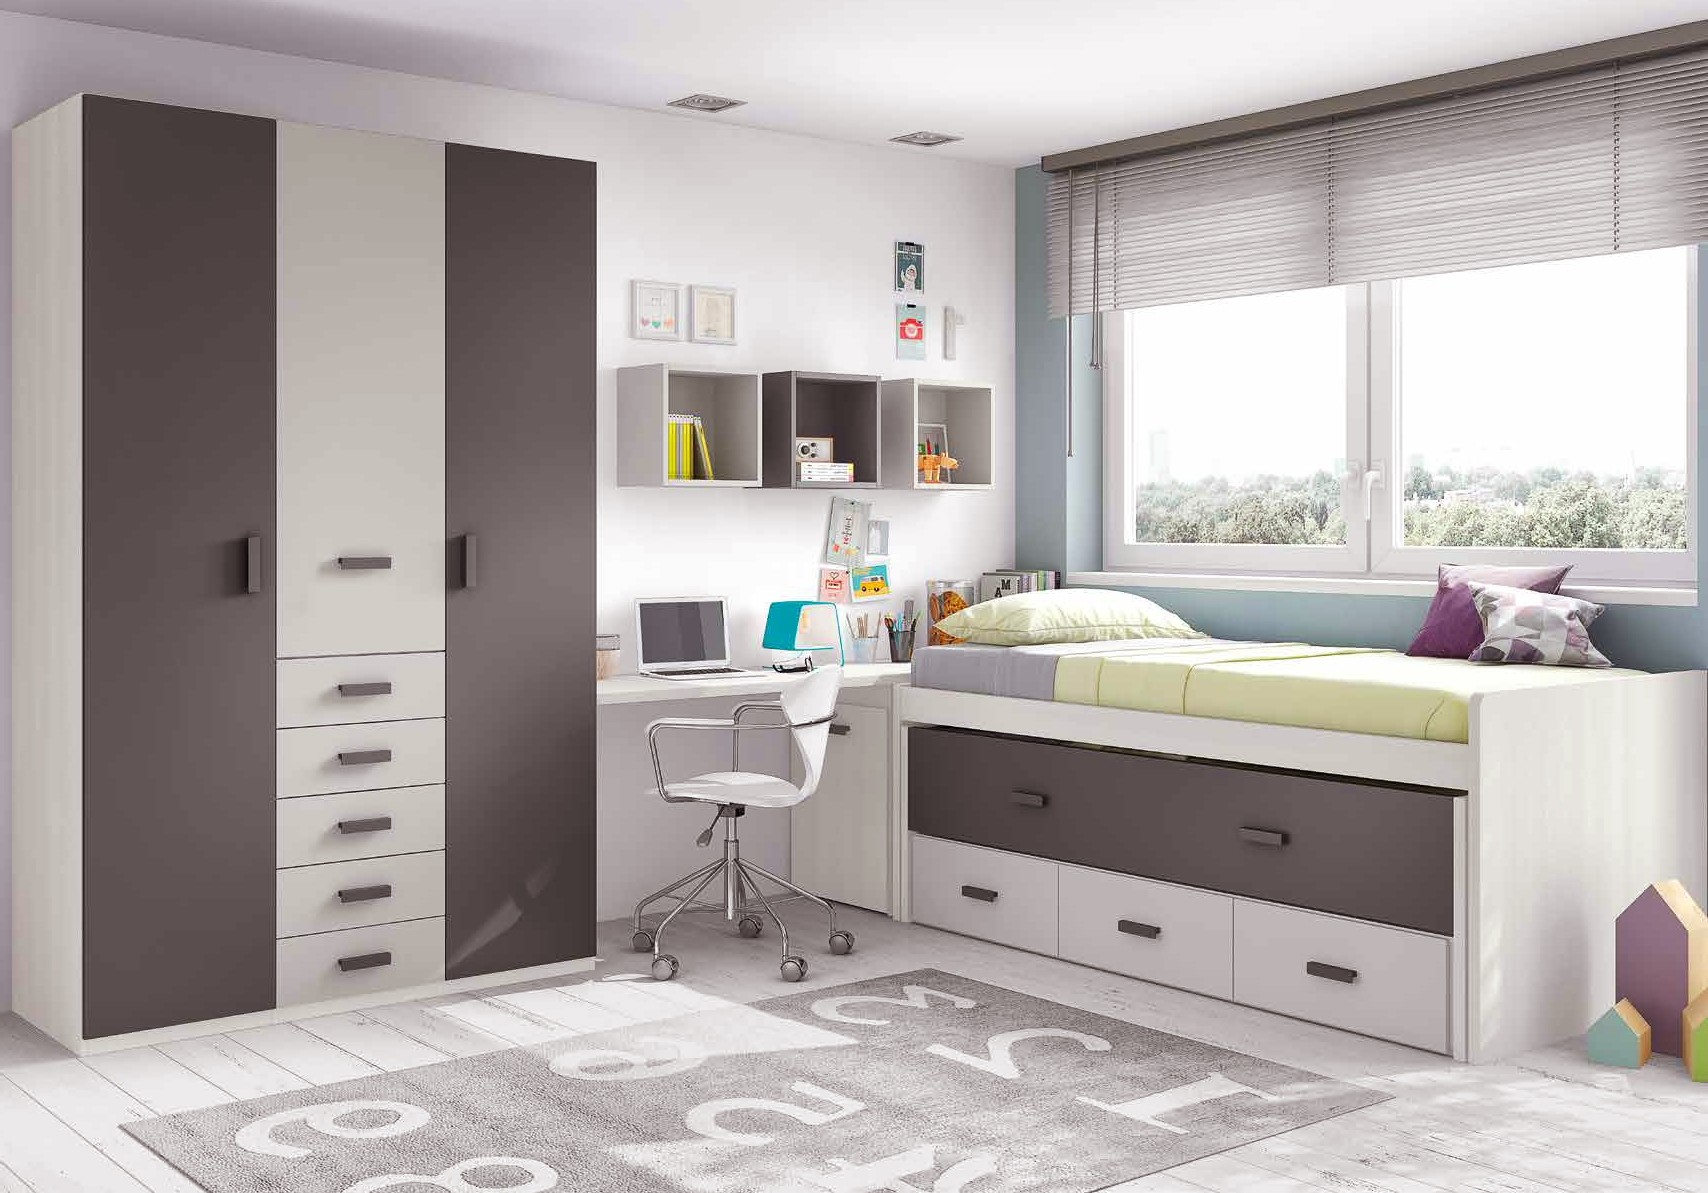 canap lit pour chambre ado chambre id es de d coration de maison eybjja2bo7. Black Bedroom Furniture Sets. Home Design Ideas